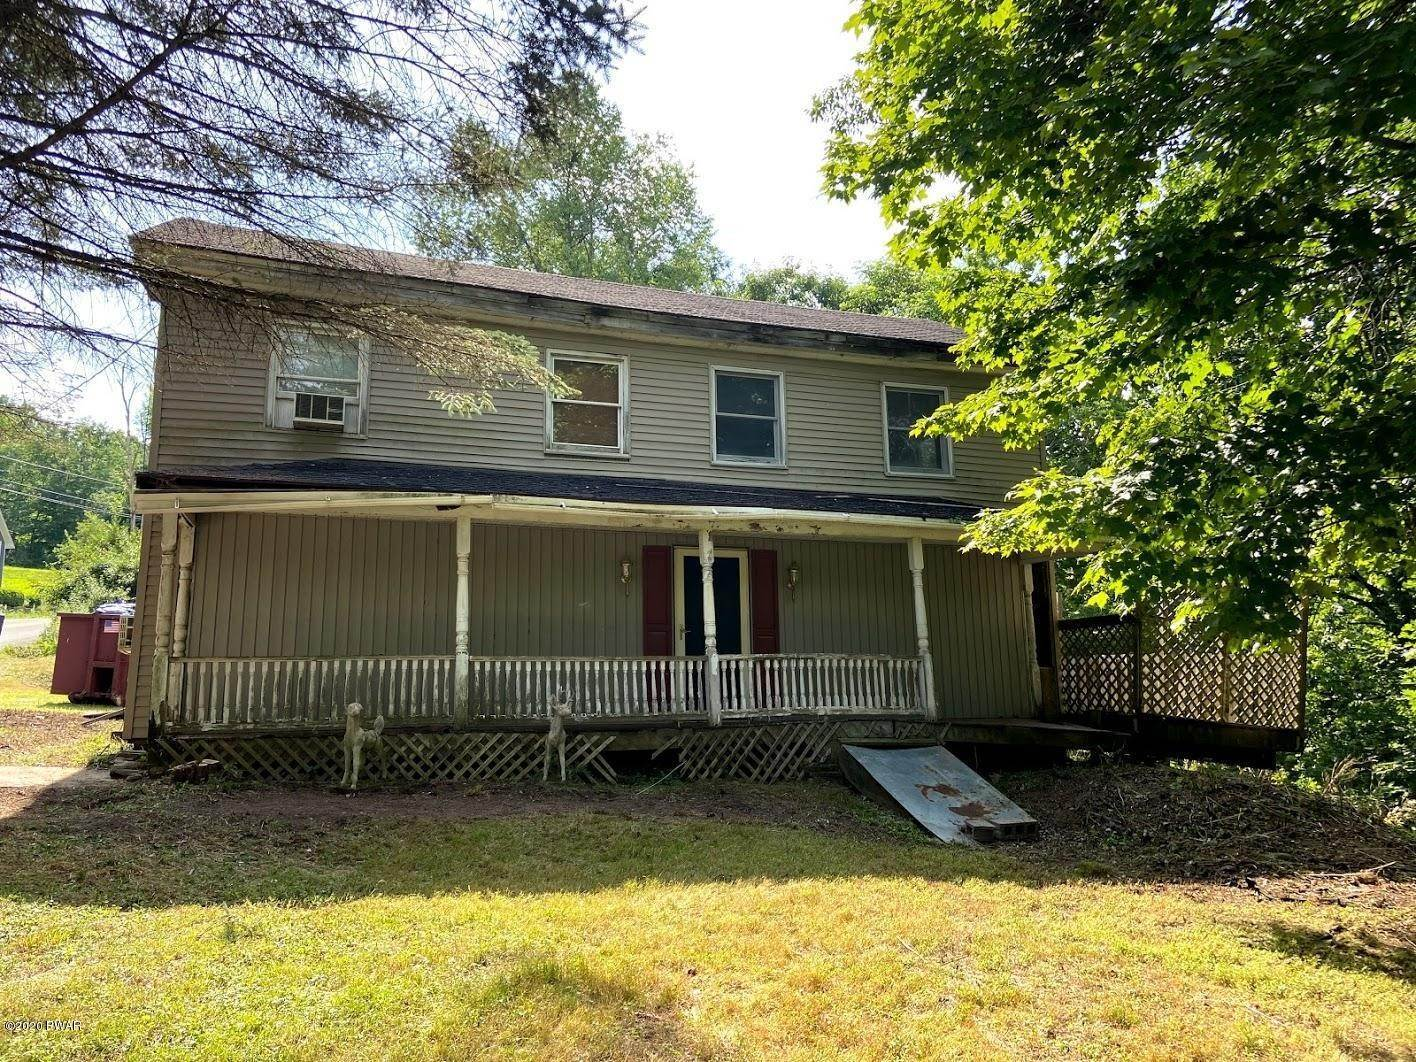 Single Family Homes for Sale at 1453 Calkins Rd Milanville, Pennsylvania 18443 United States